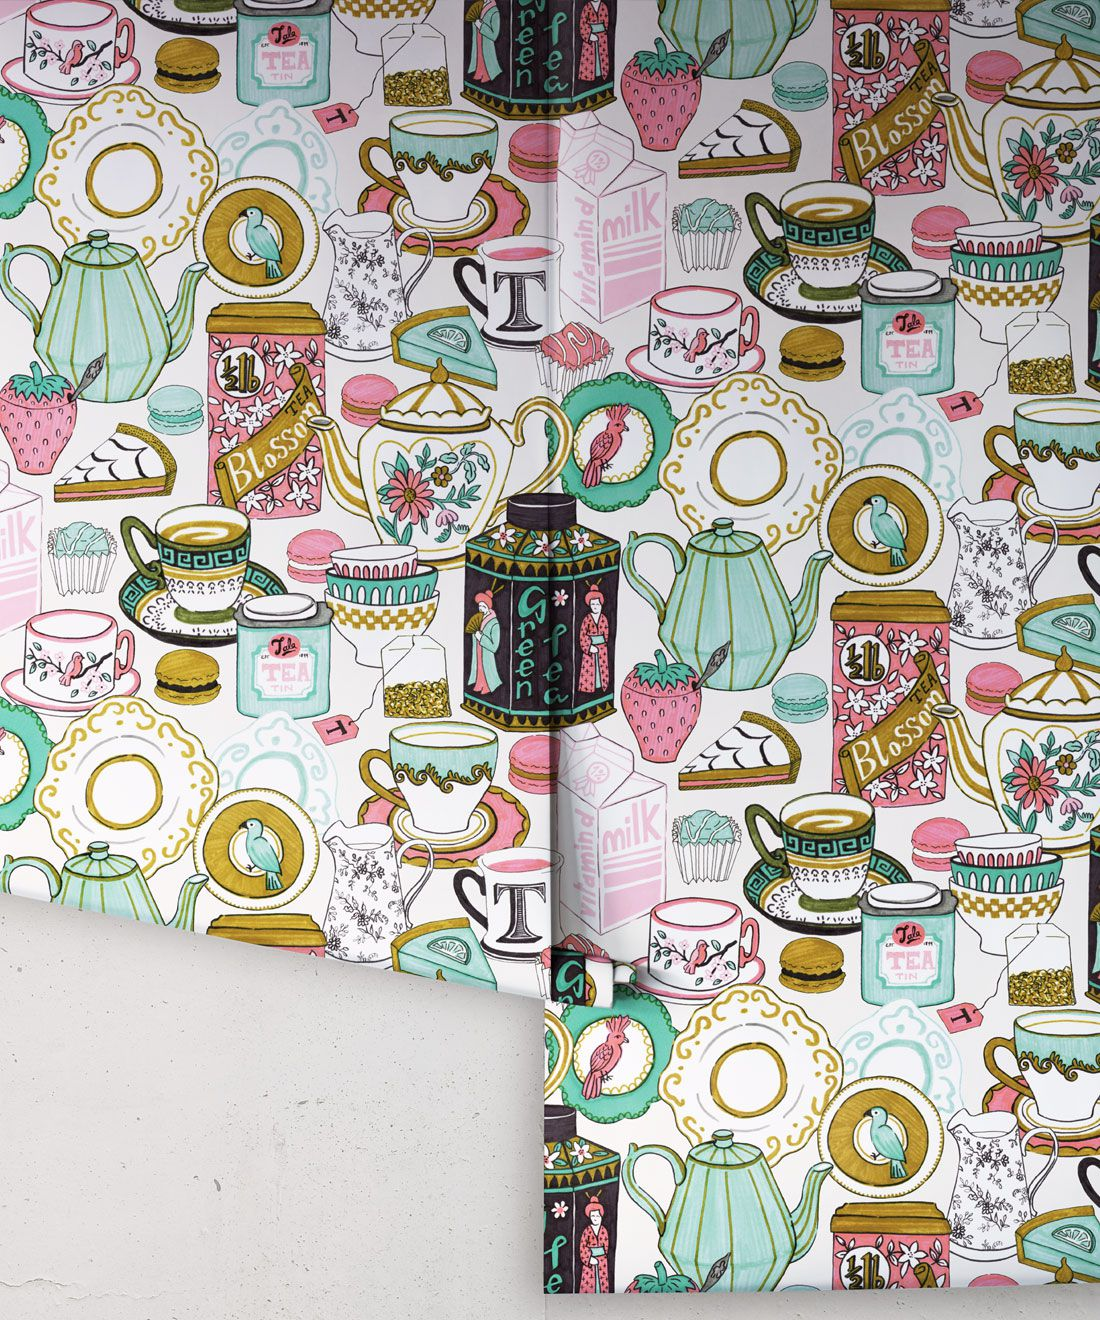 Tea Time Wallpaper • tea cups, tea pots, macaroons • milk and cream rolls